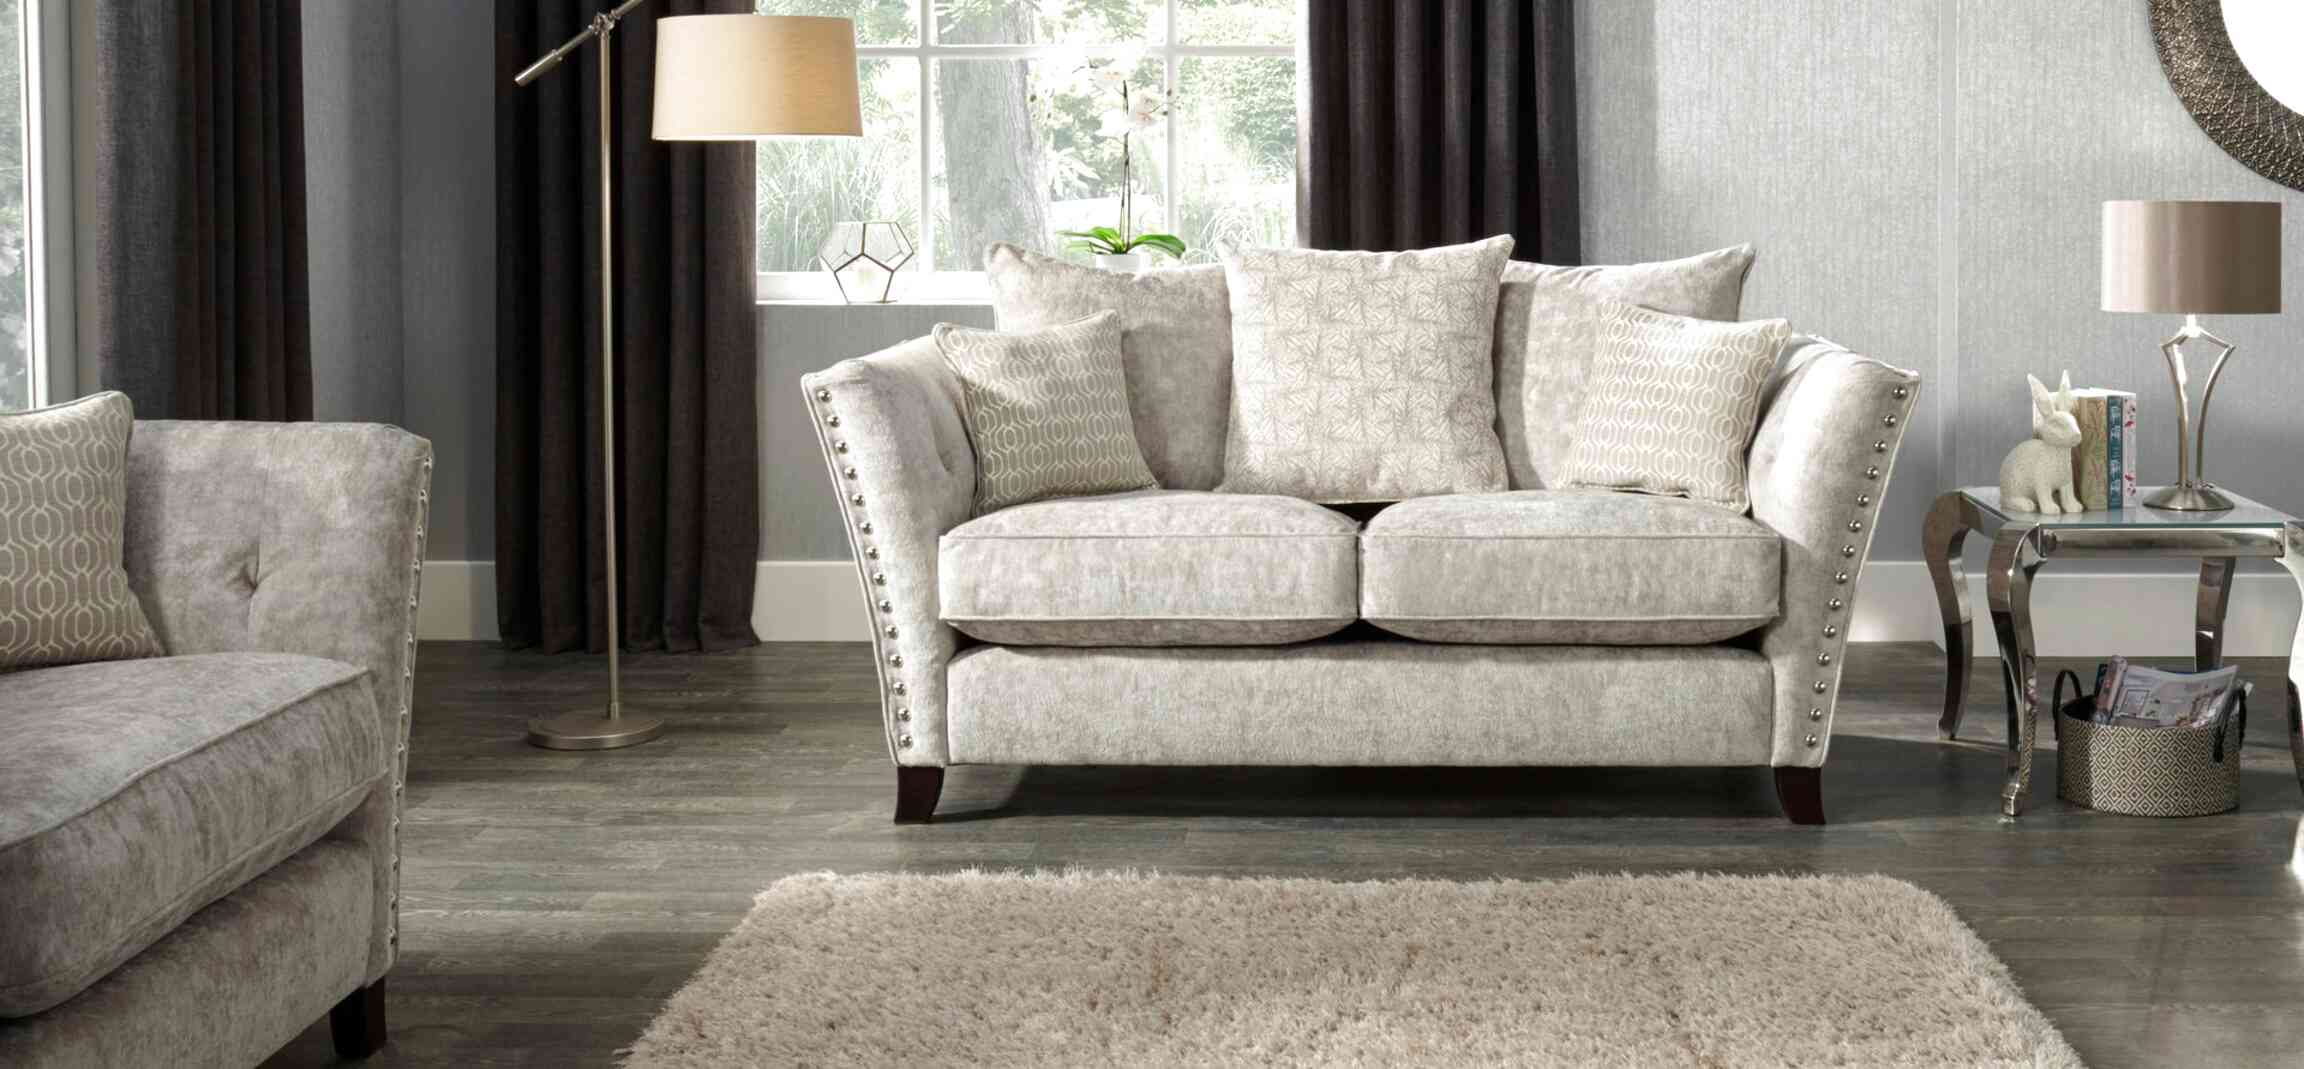 Scs Sofas For Sale In Uk 87 Second Hand Scs Sofas